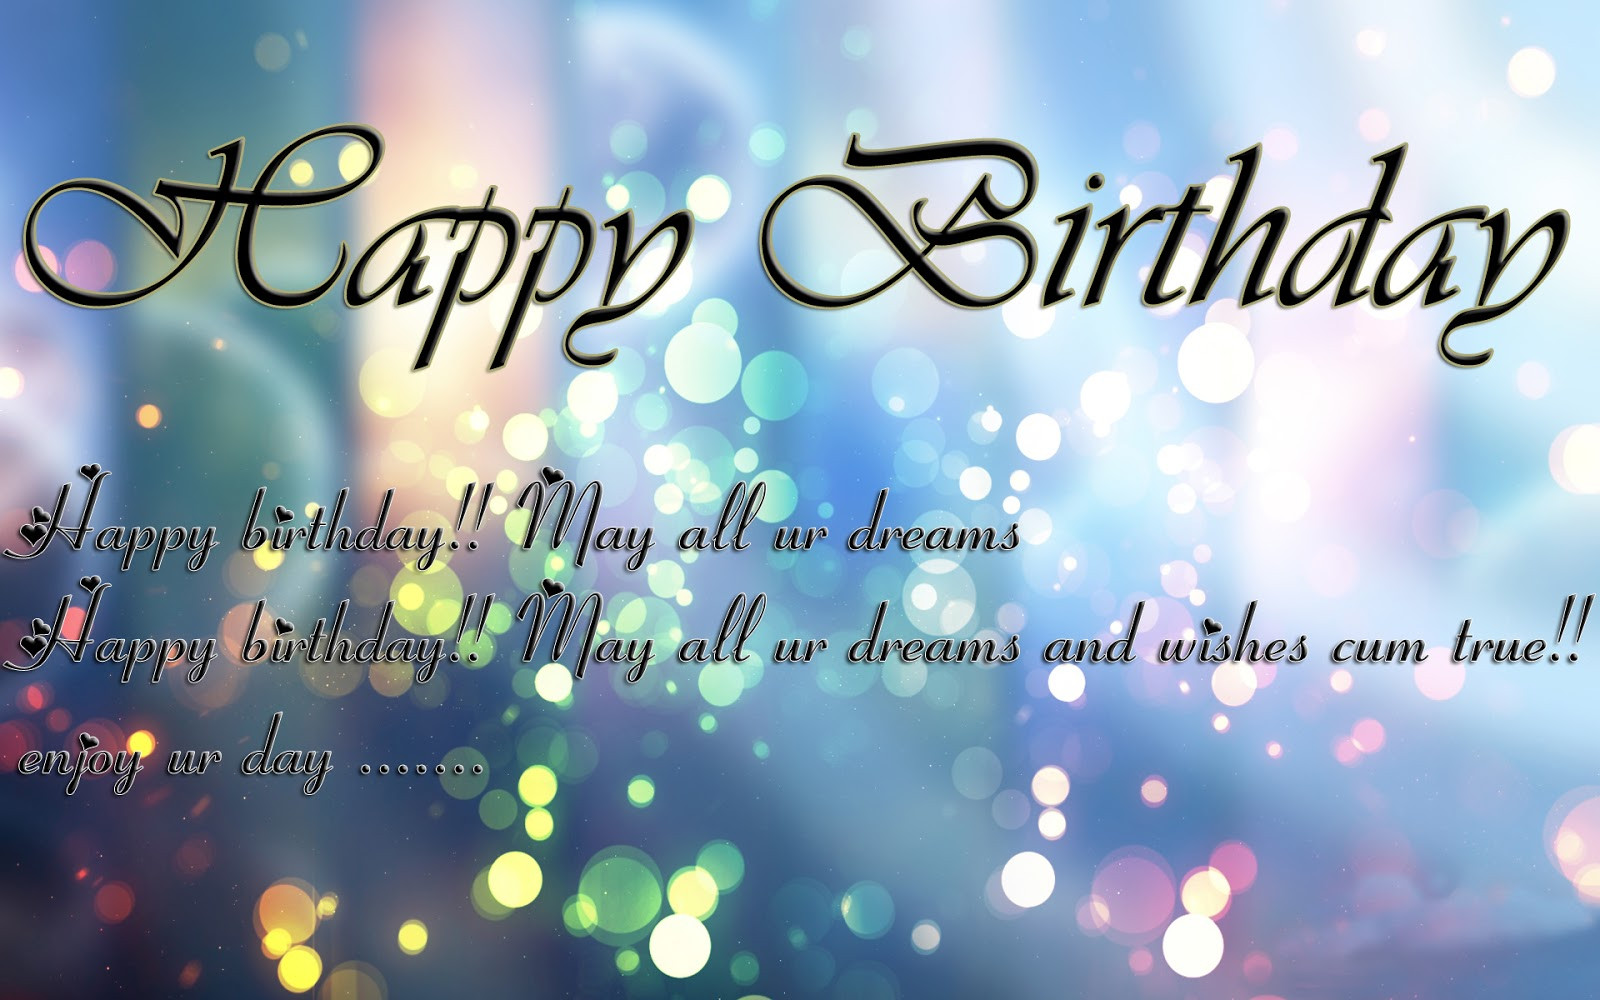 Best ideas about Happy Birthday Wishes For Best Friend . Save or Pin Happy Birthday Wishes Poem for Brother Now.